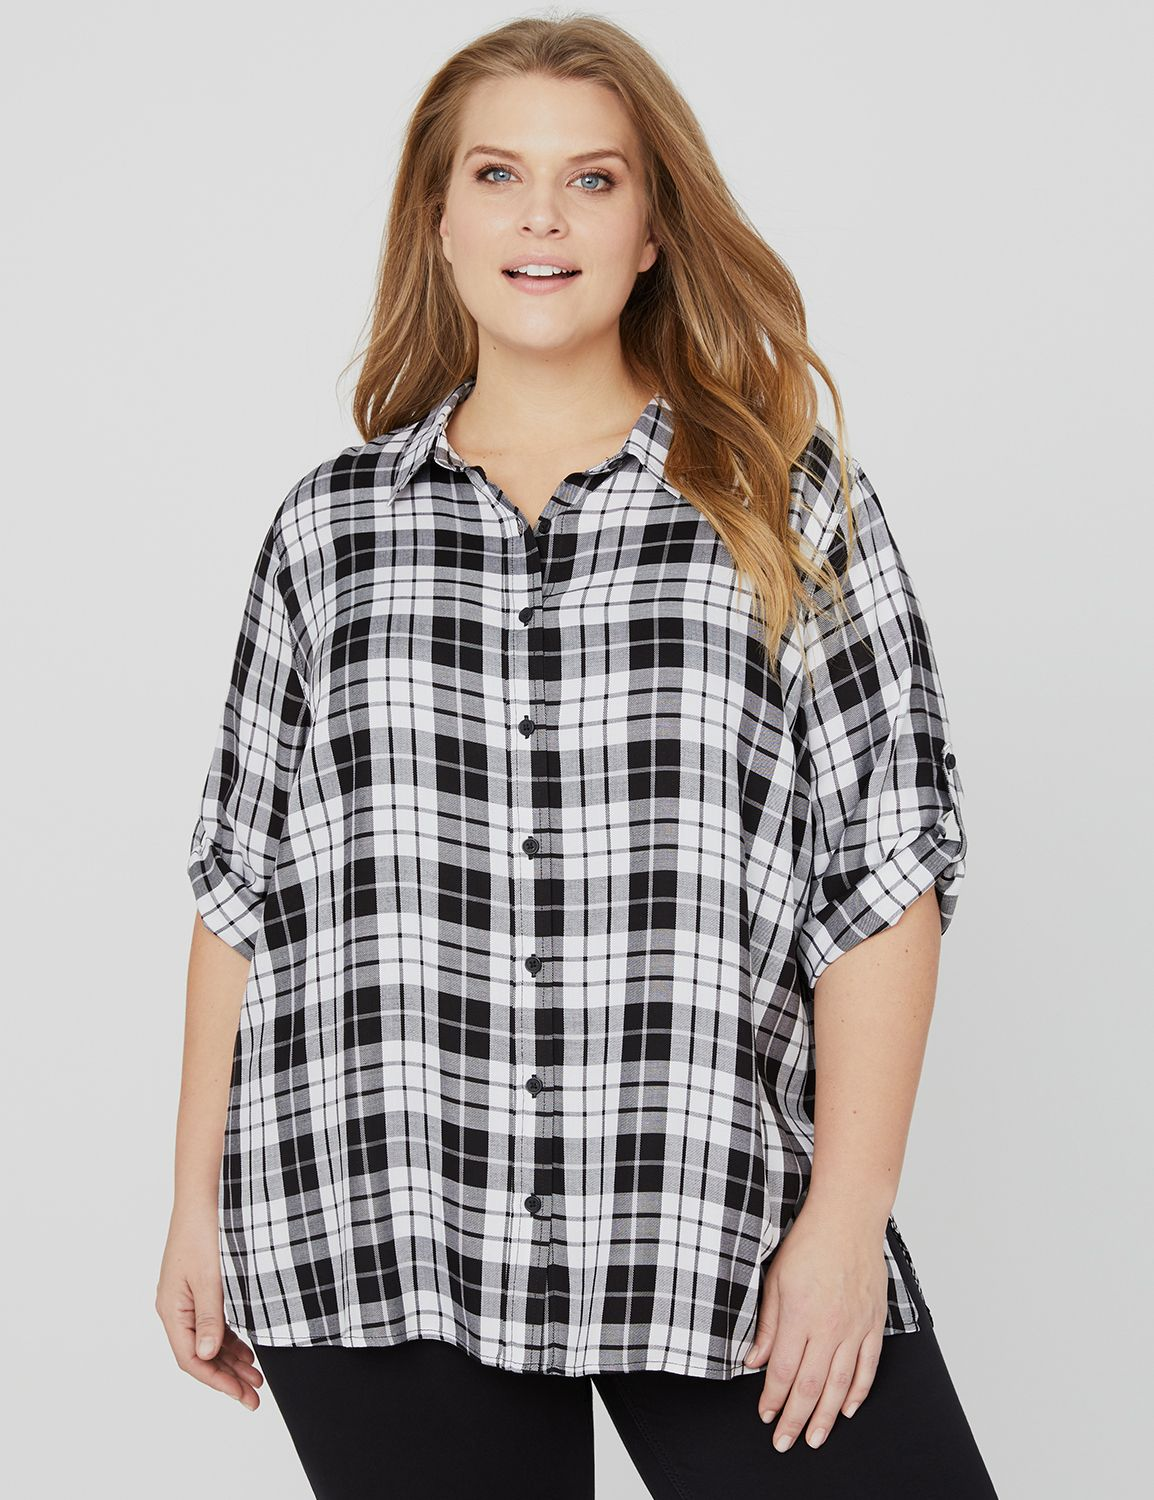 Hybrid Buttonfront Shirt 1093256 3/4 SLV PLAID BACK SHIRT MP-300101754